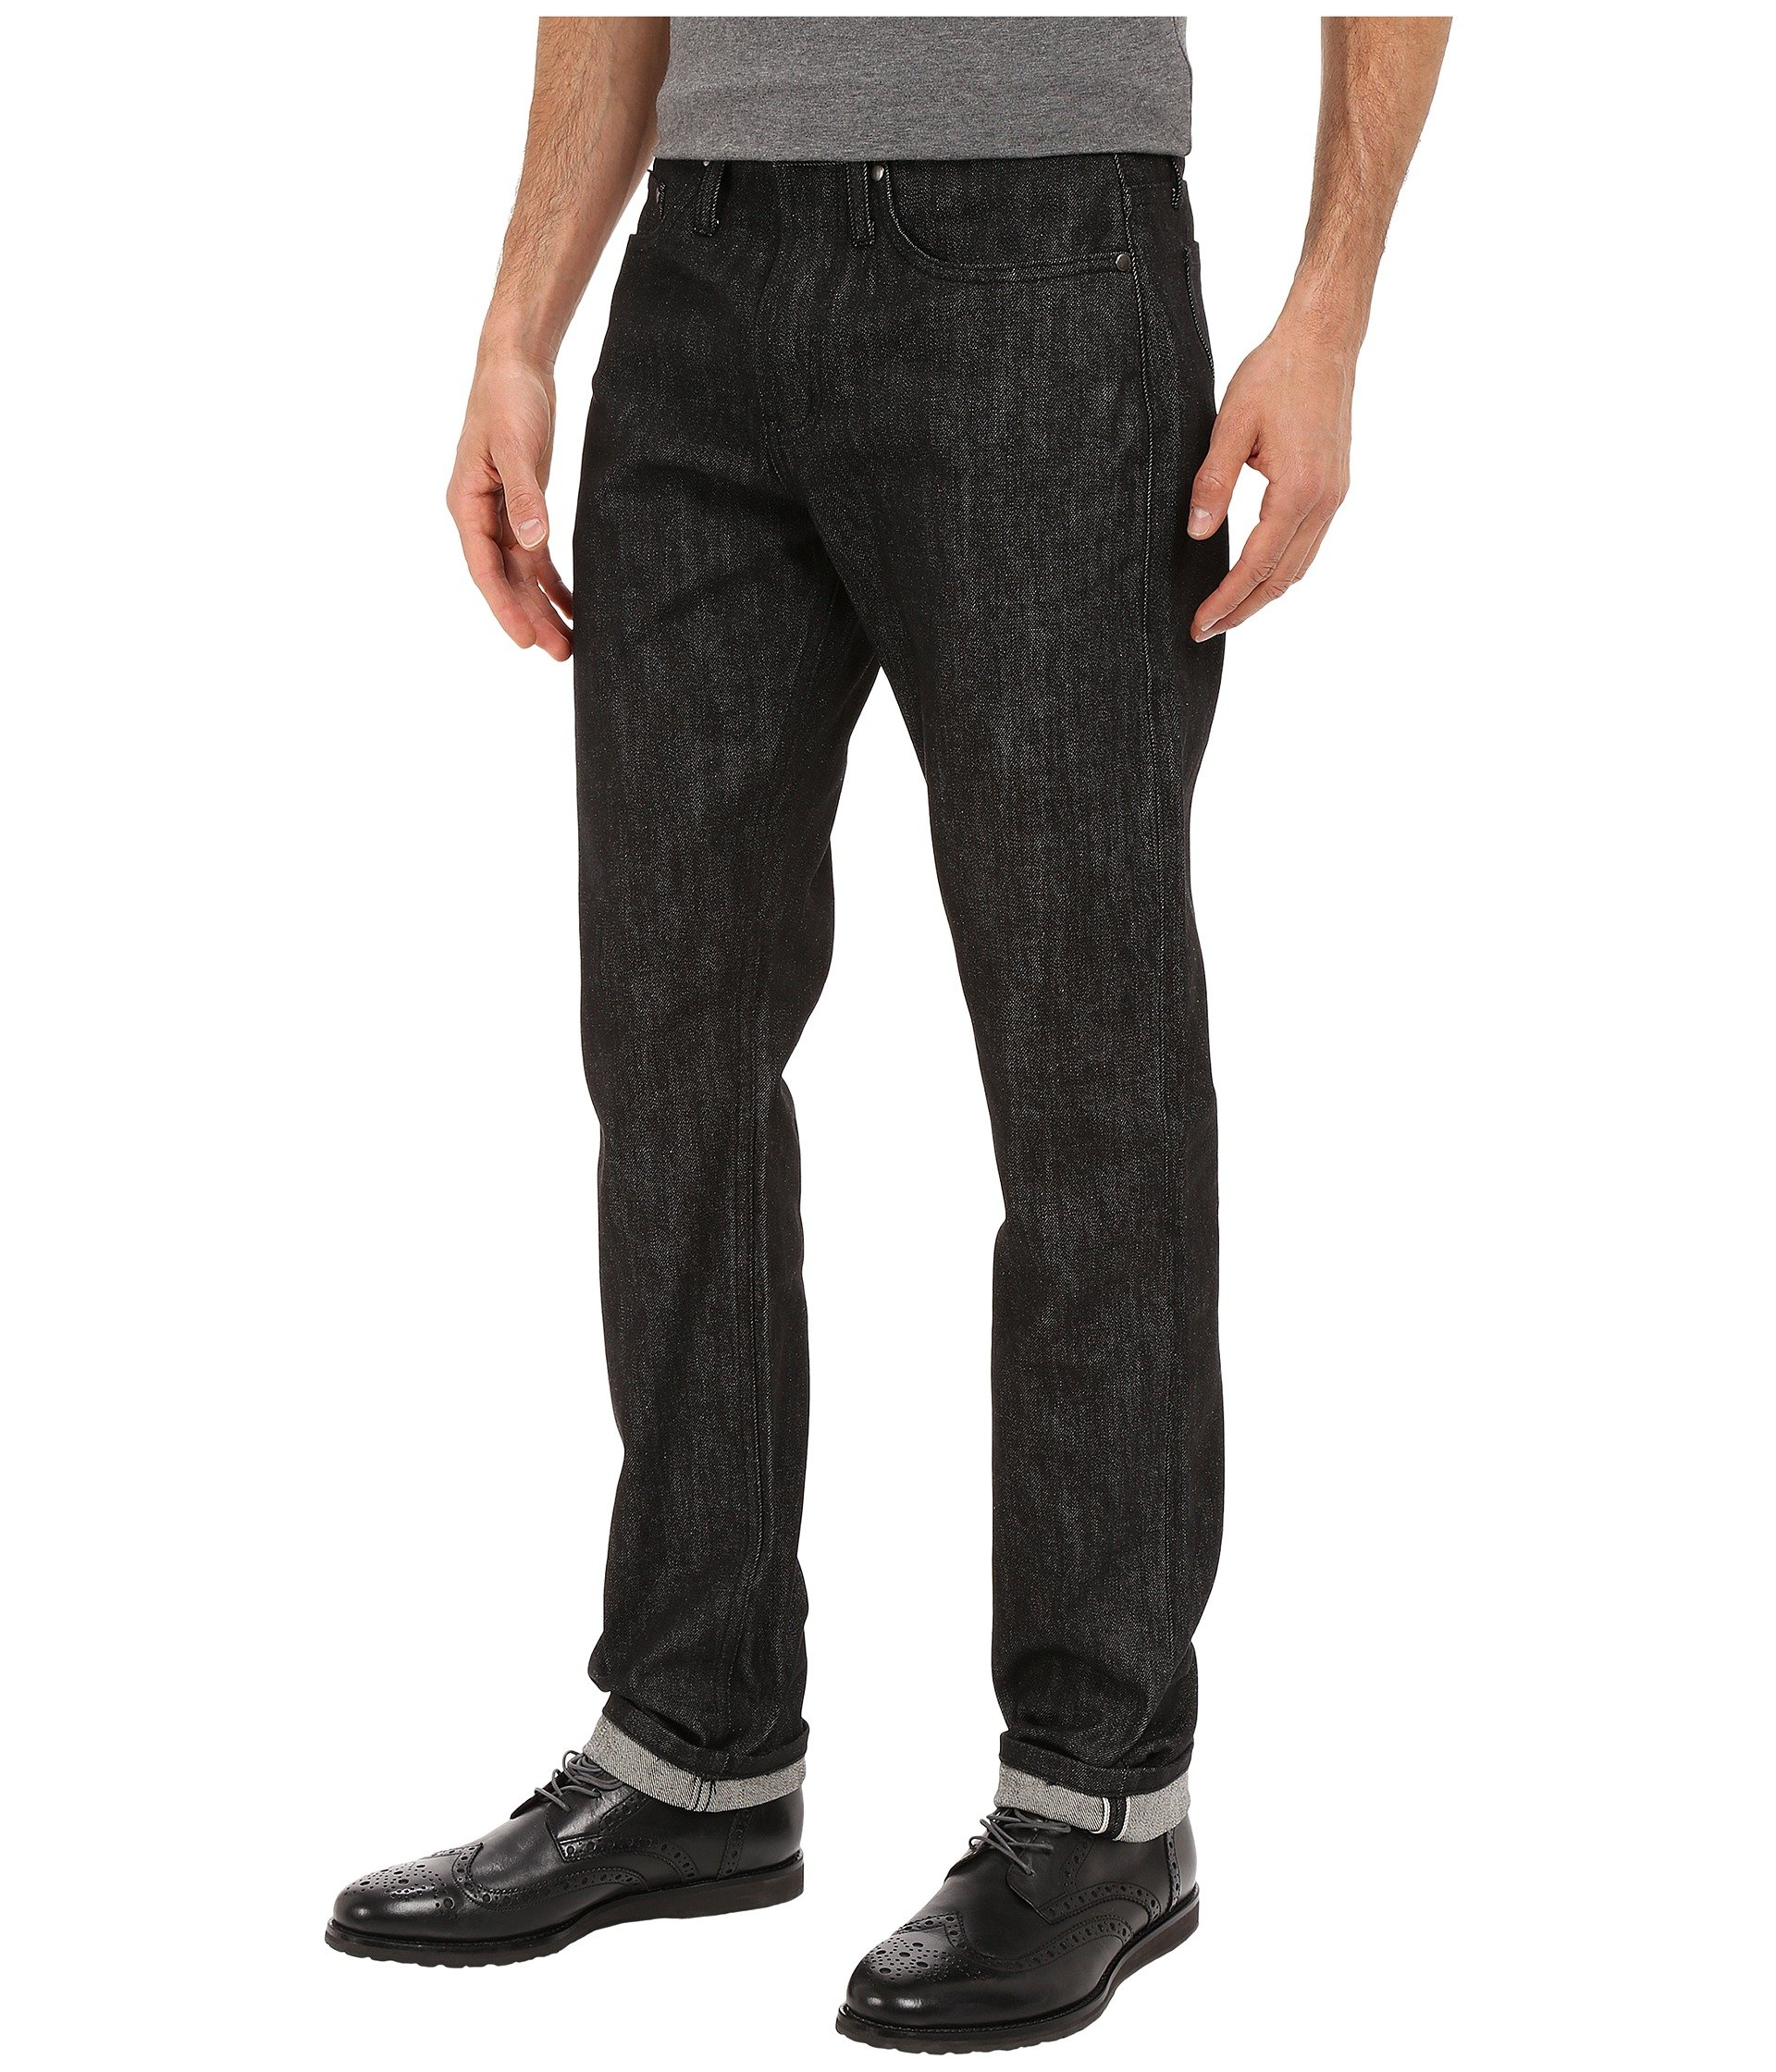 The Unbranded Brand Tapered Jeans in Black Selvedge at ...